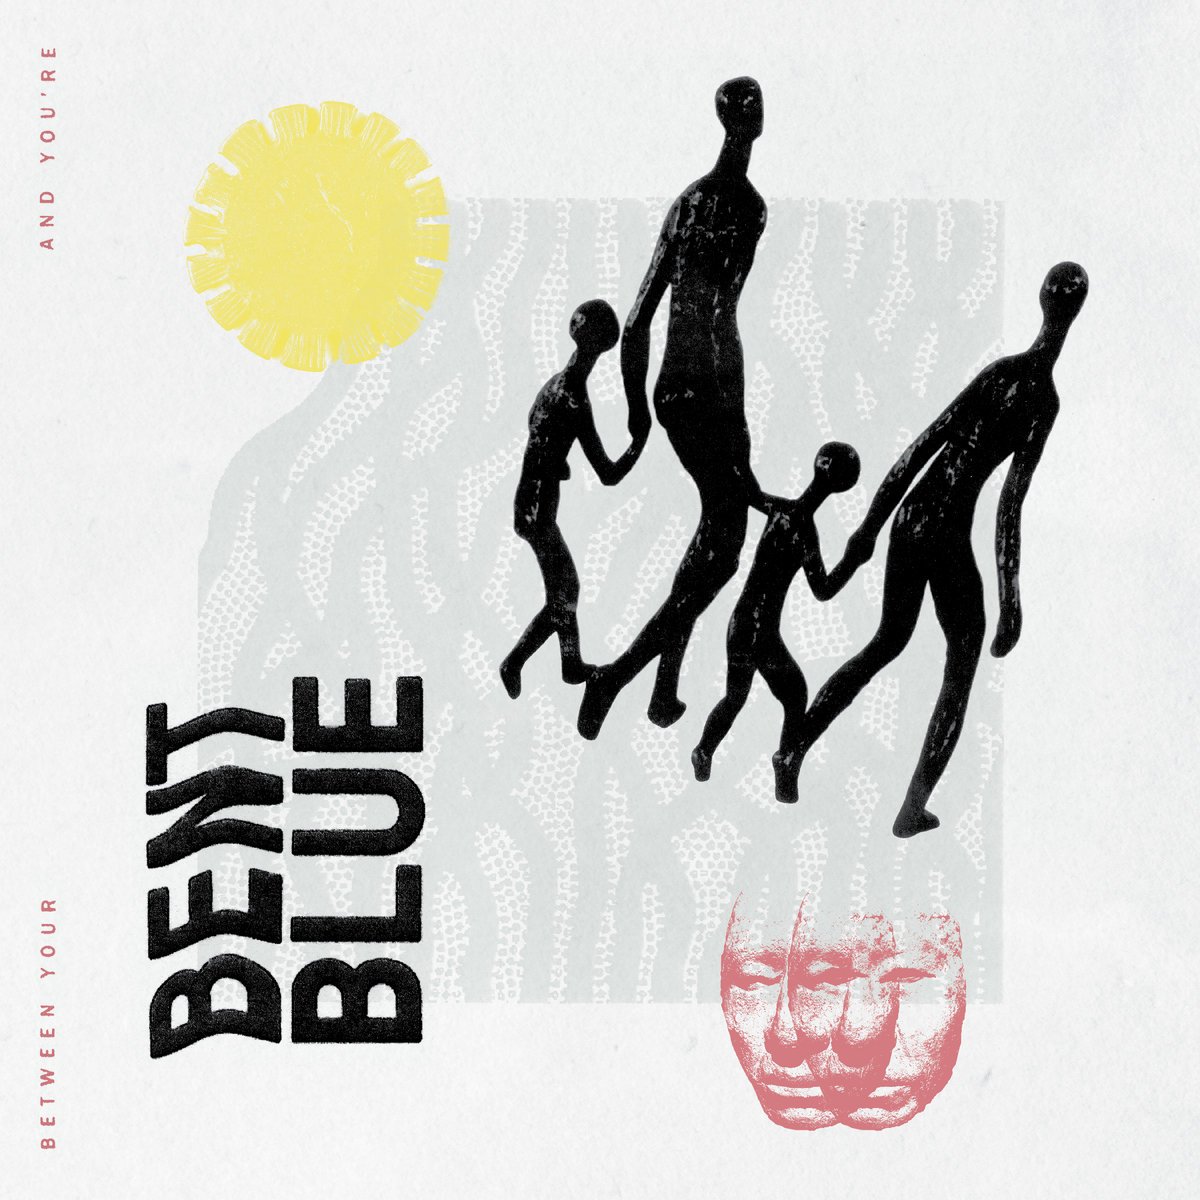 Bent Blue - Between Your And You're [Tape-Artwork]